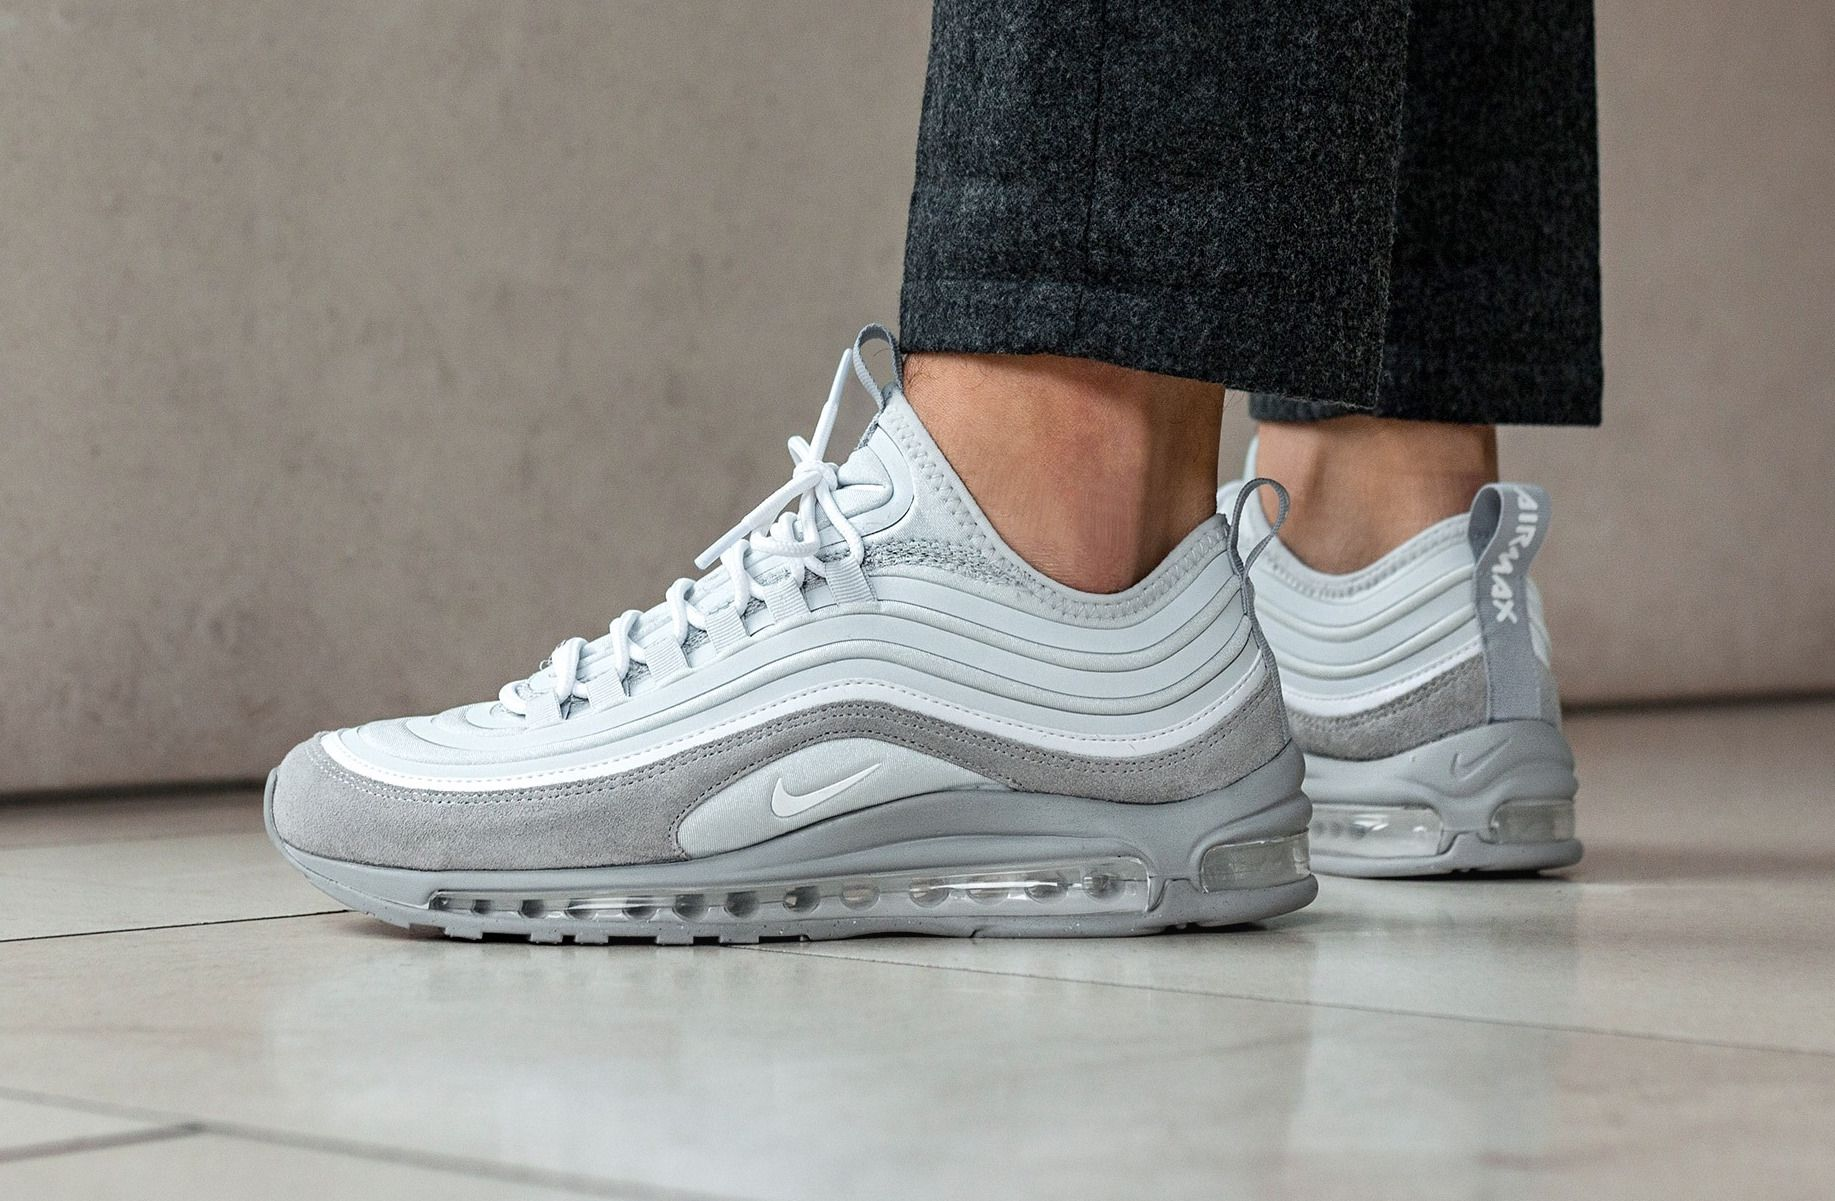 Look For The Nike Air Max 97 Ultra 17 Wolf Grey Now